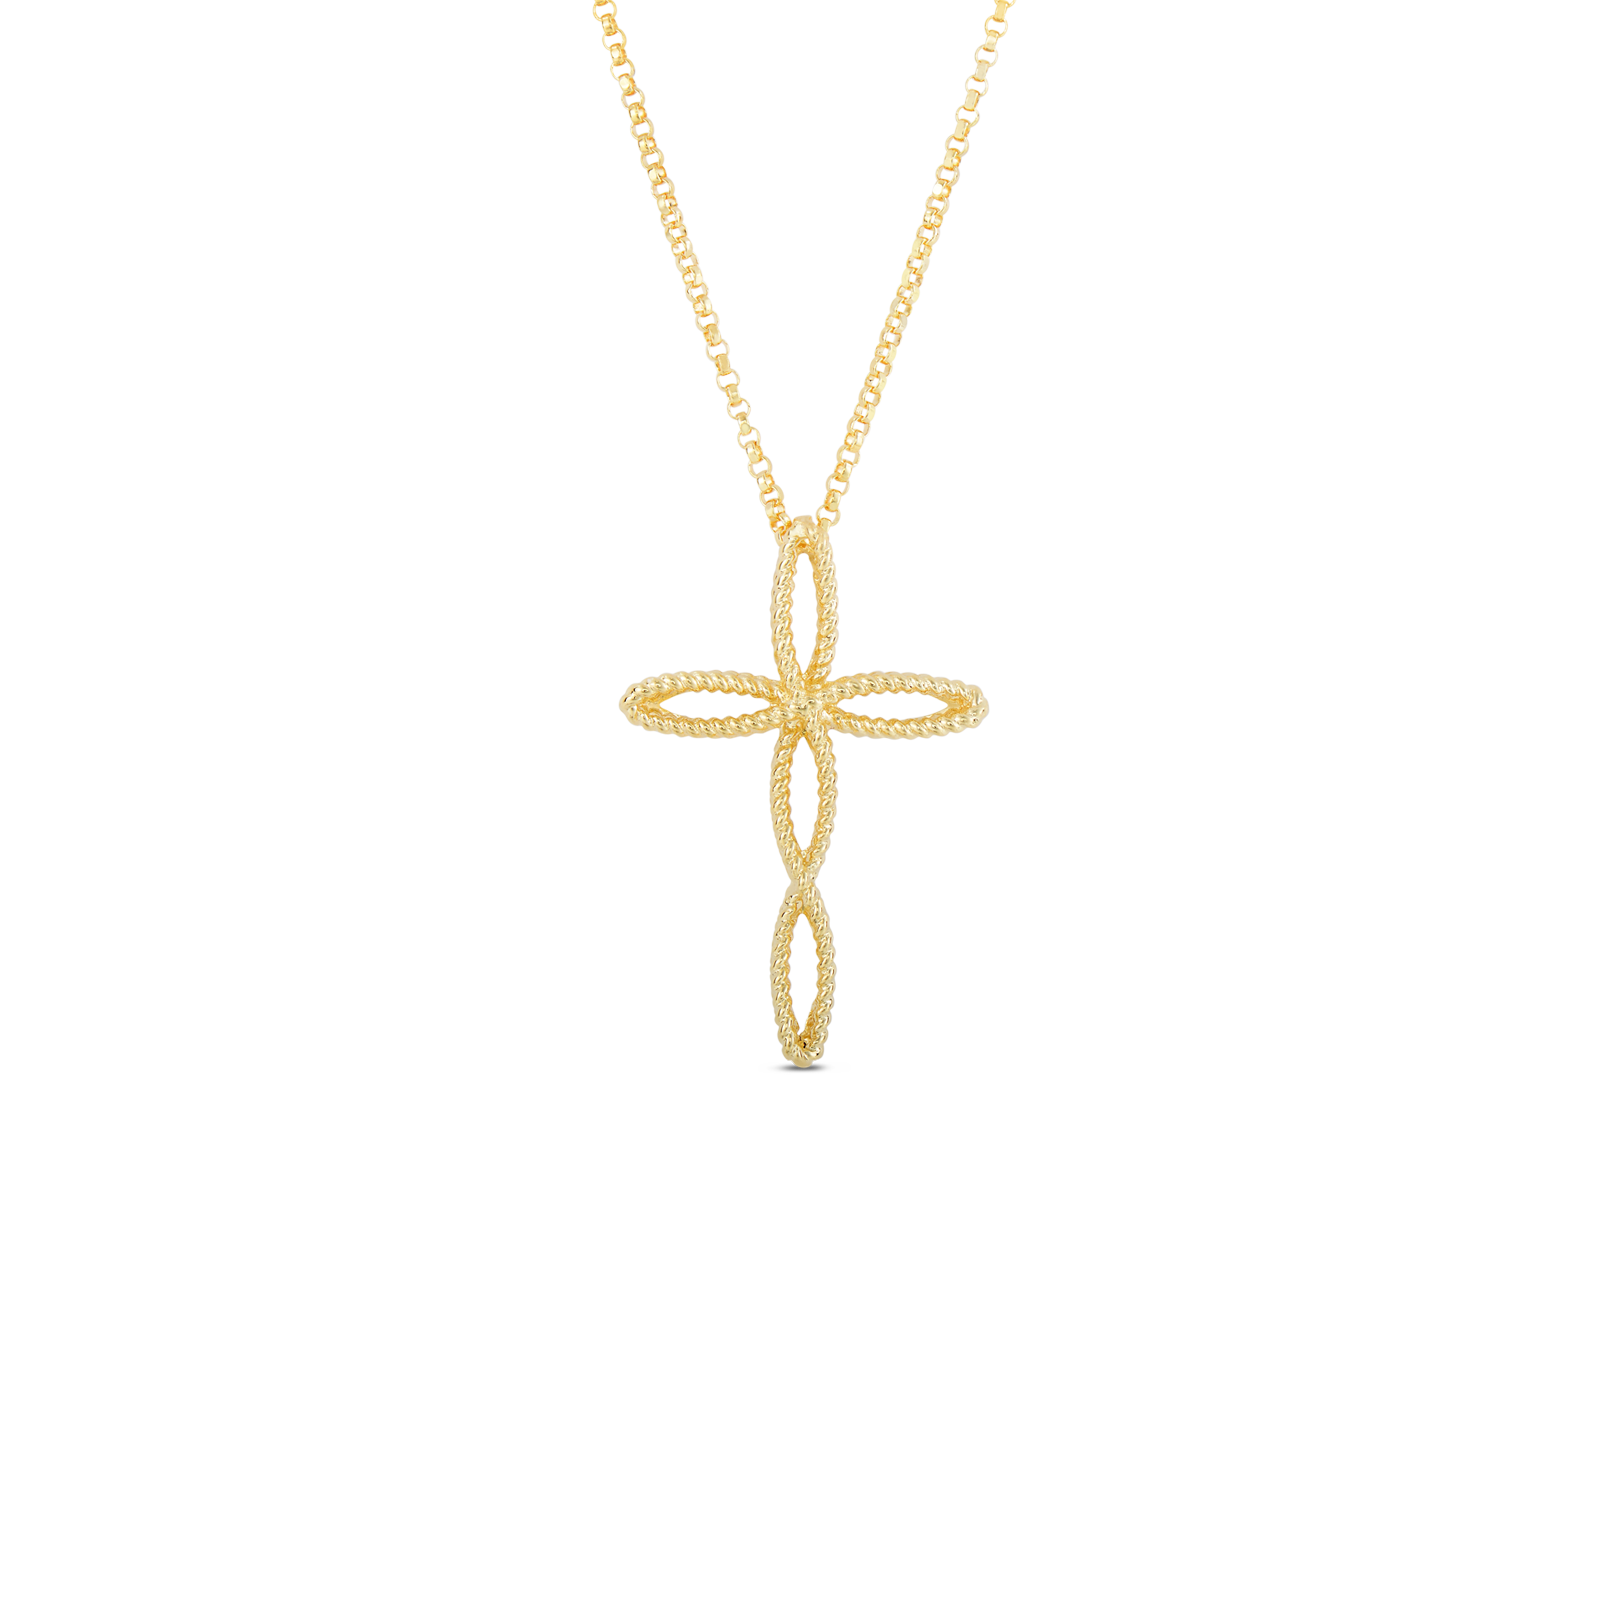 Cross necklace clipart vector royalty free Gold Cross Necklaces - clipart vector royalty free